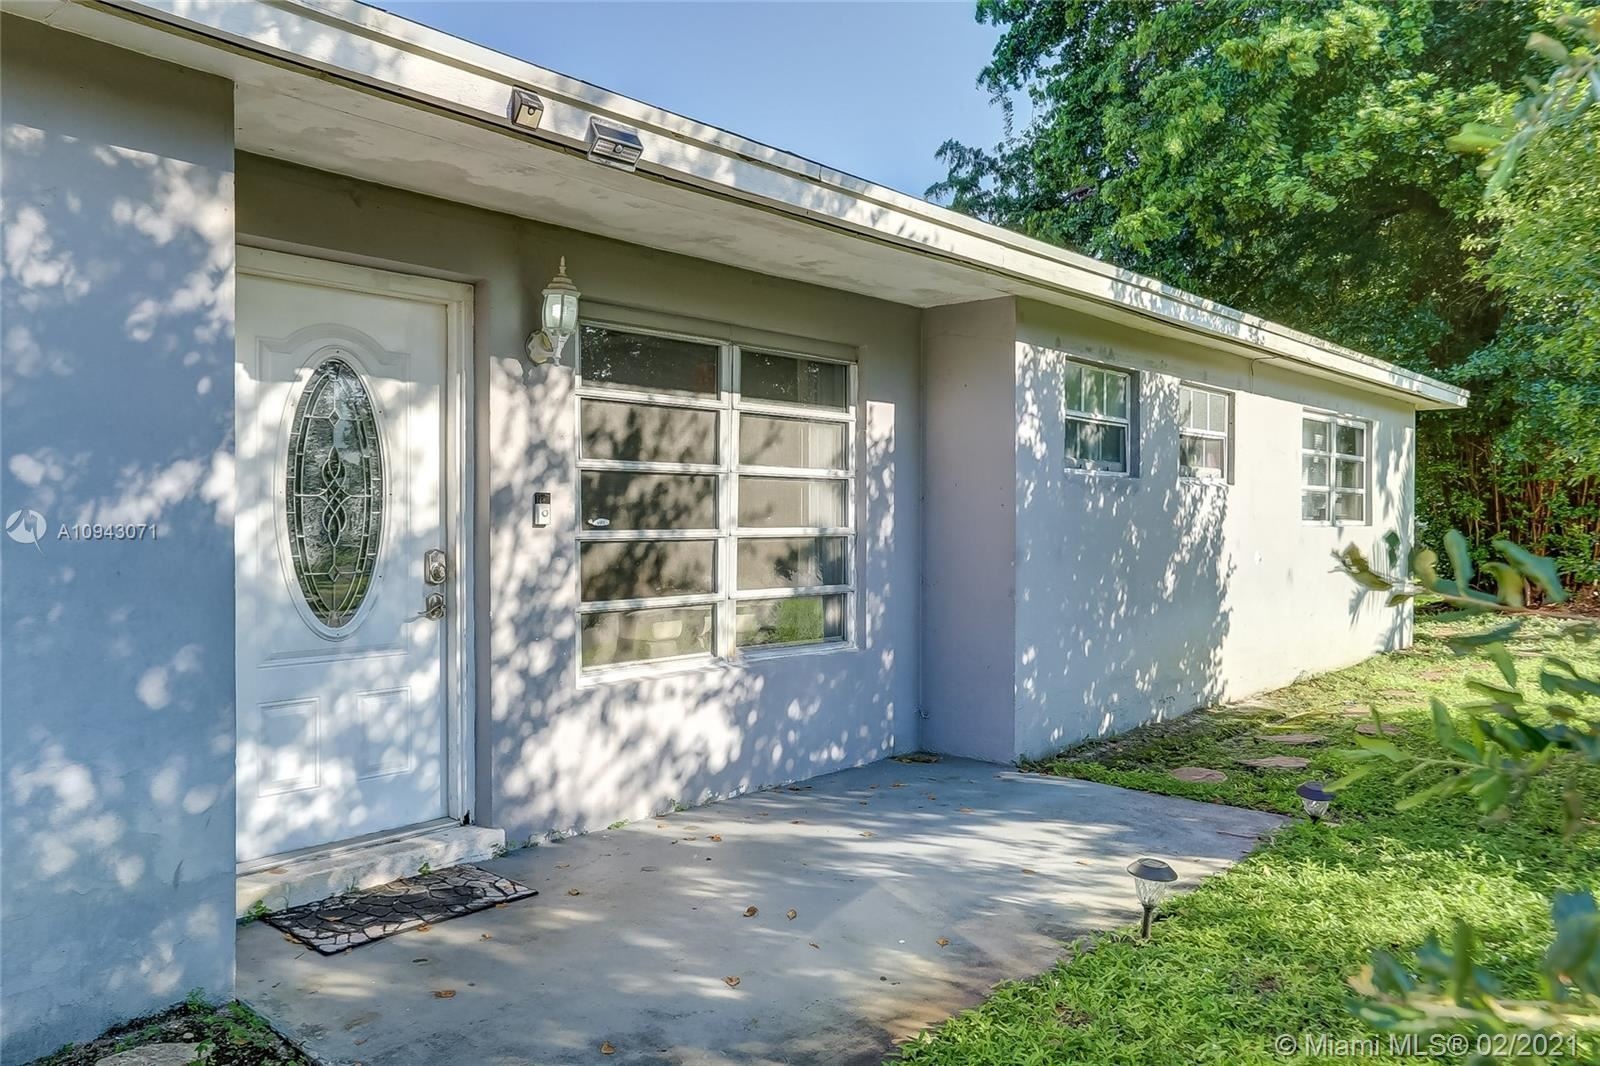 301 NE 42nd Ct, Oakland Park, FL 33334 - #: A10943071